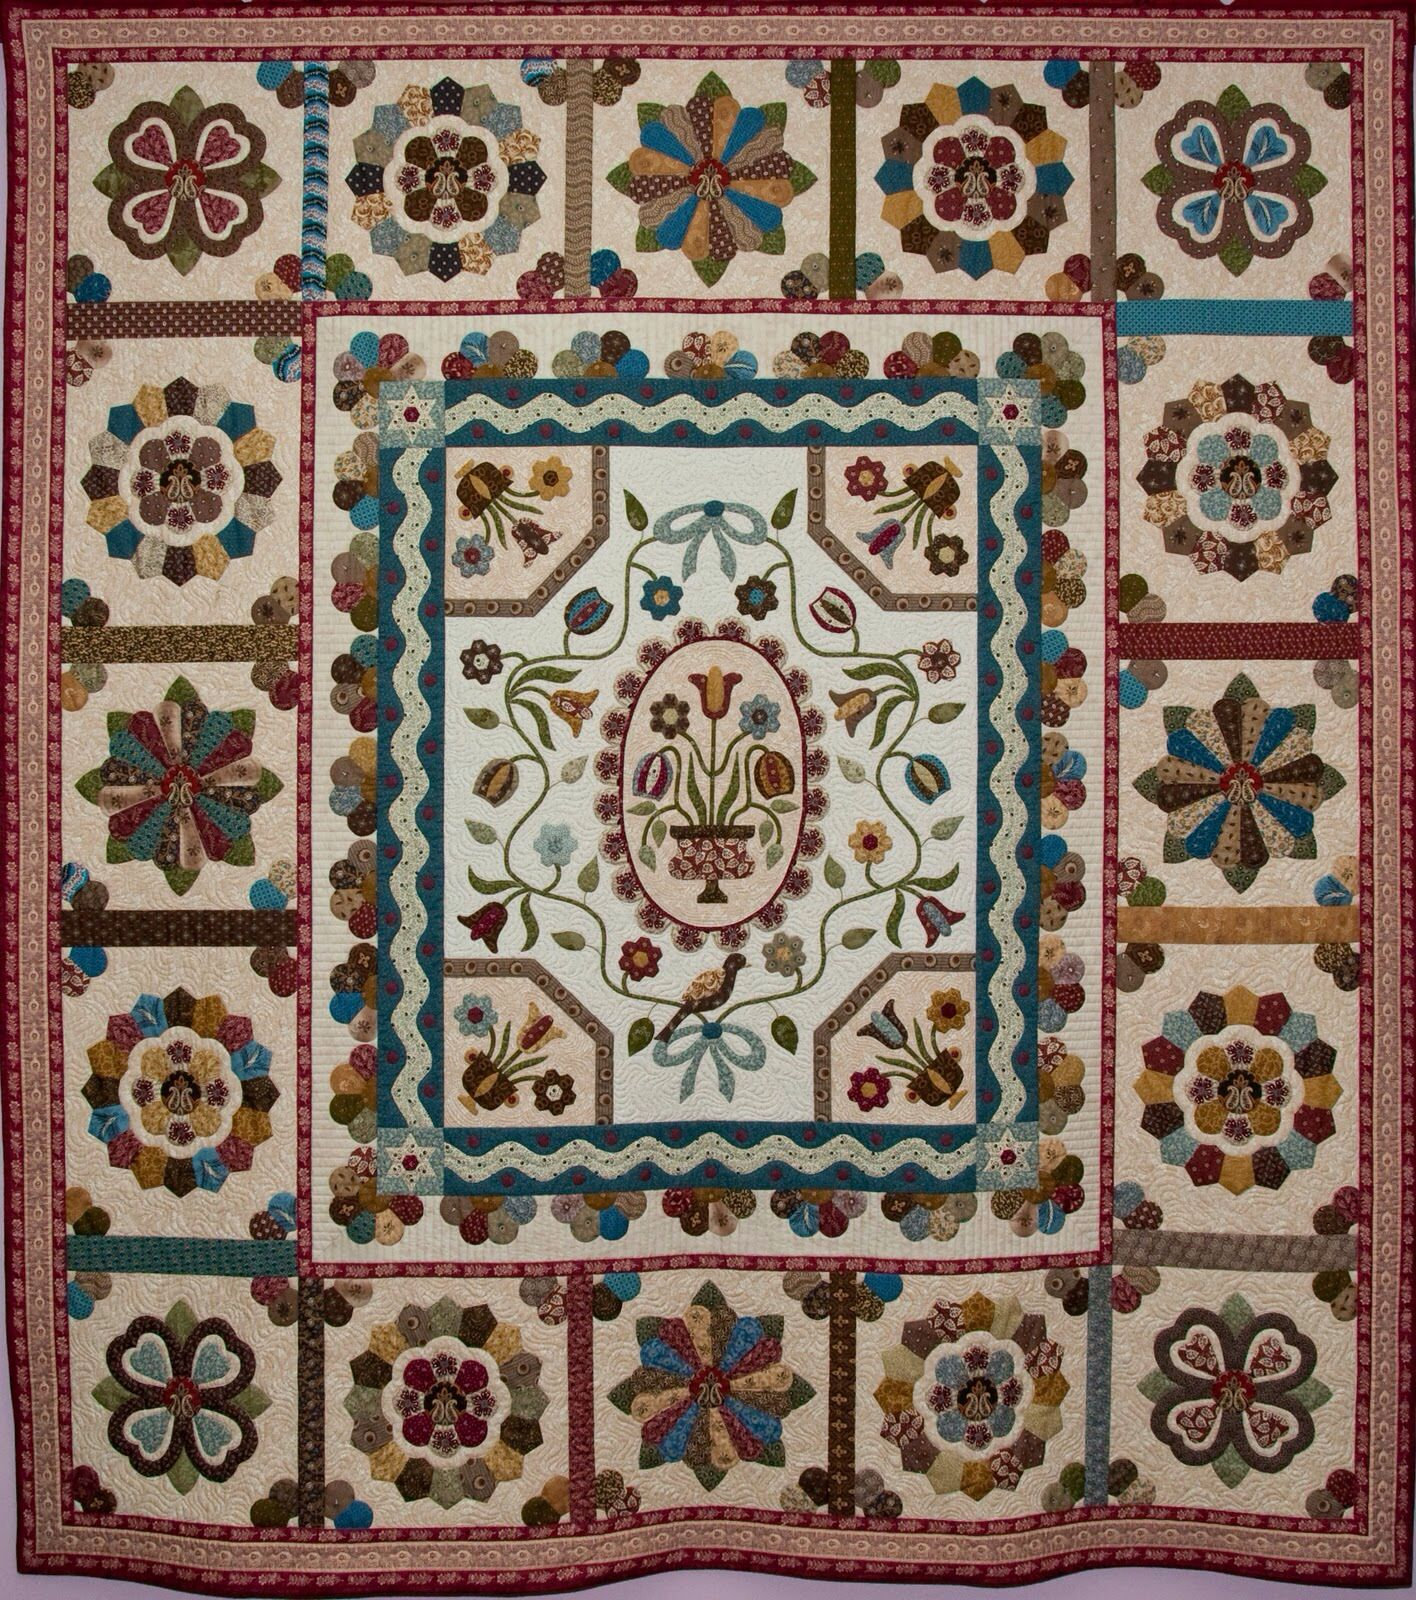 Pin by Berit W. Moe on Old quilts | Pinterest | Medallion quilt ... : australian quilts for sale - Adamdwight.com